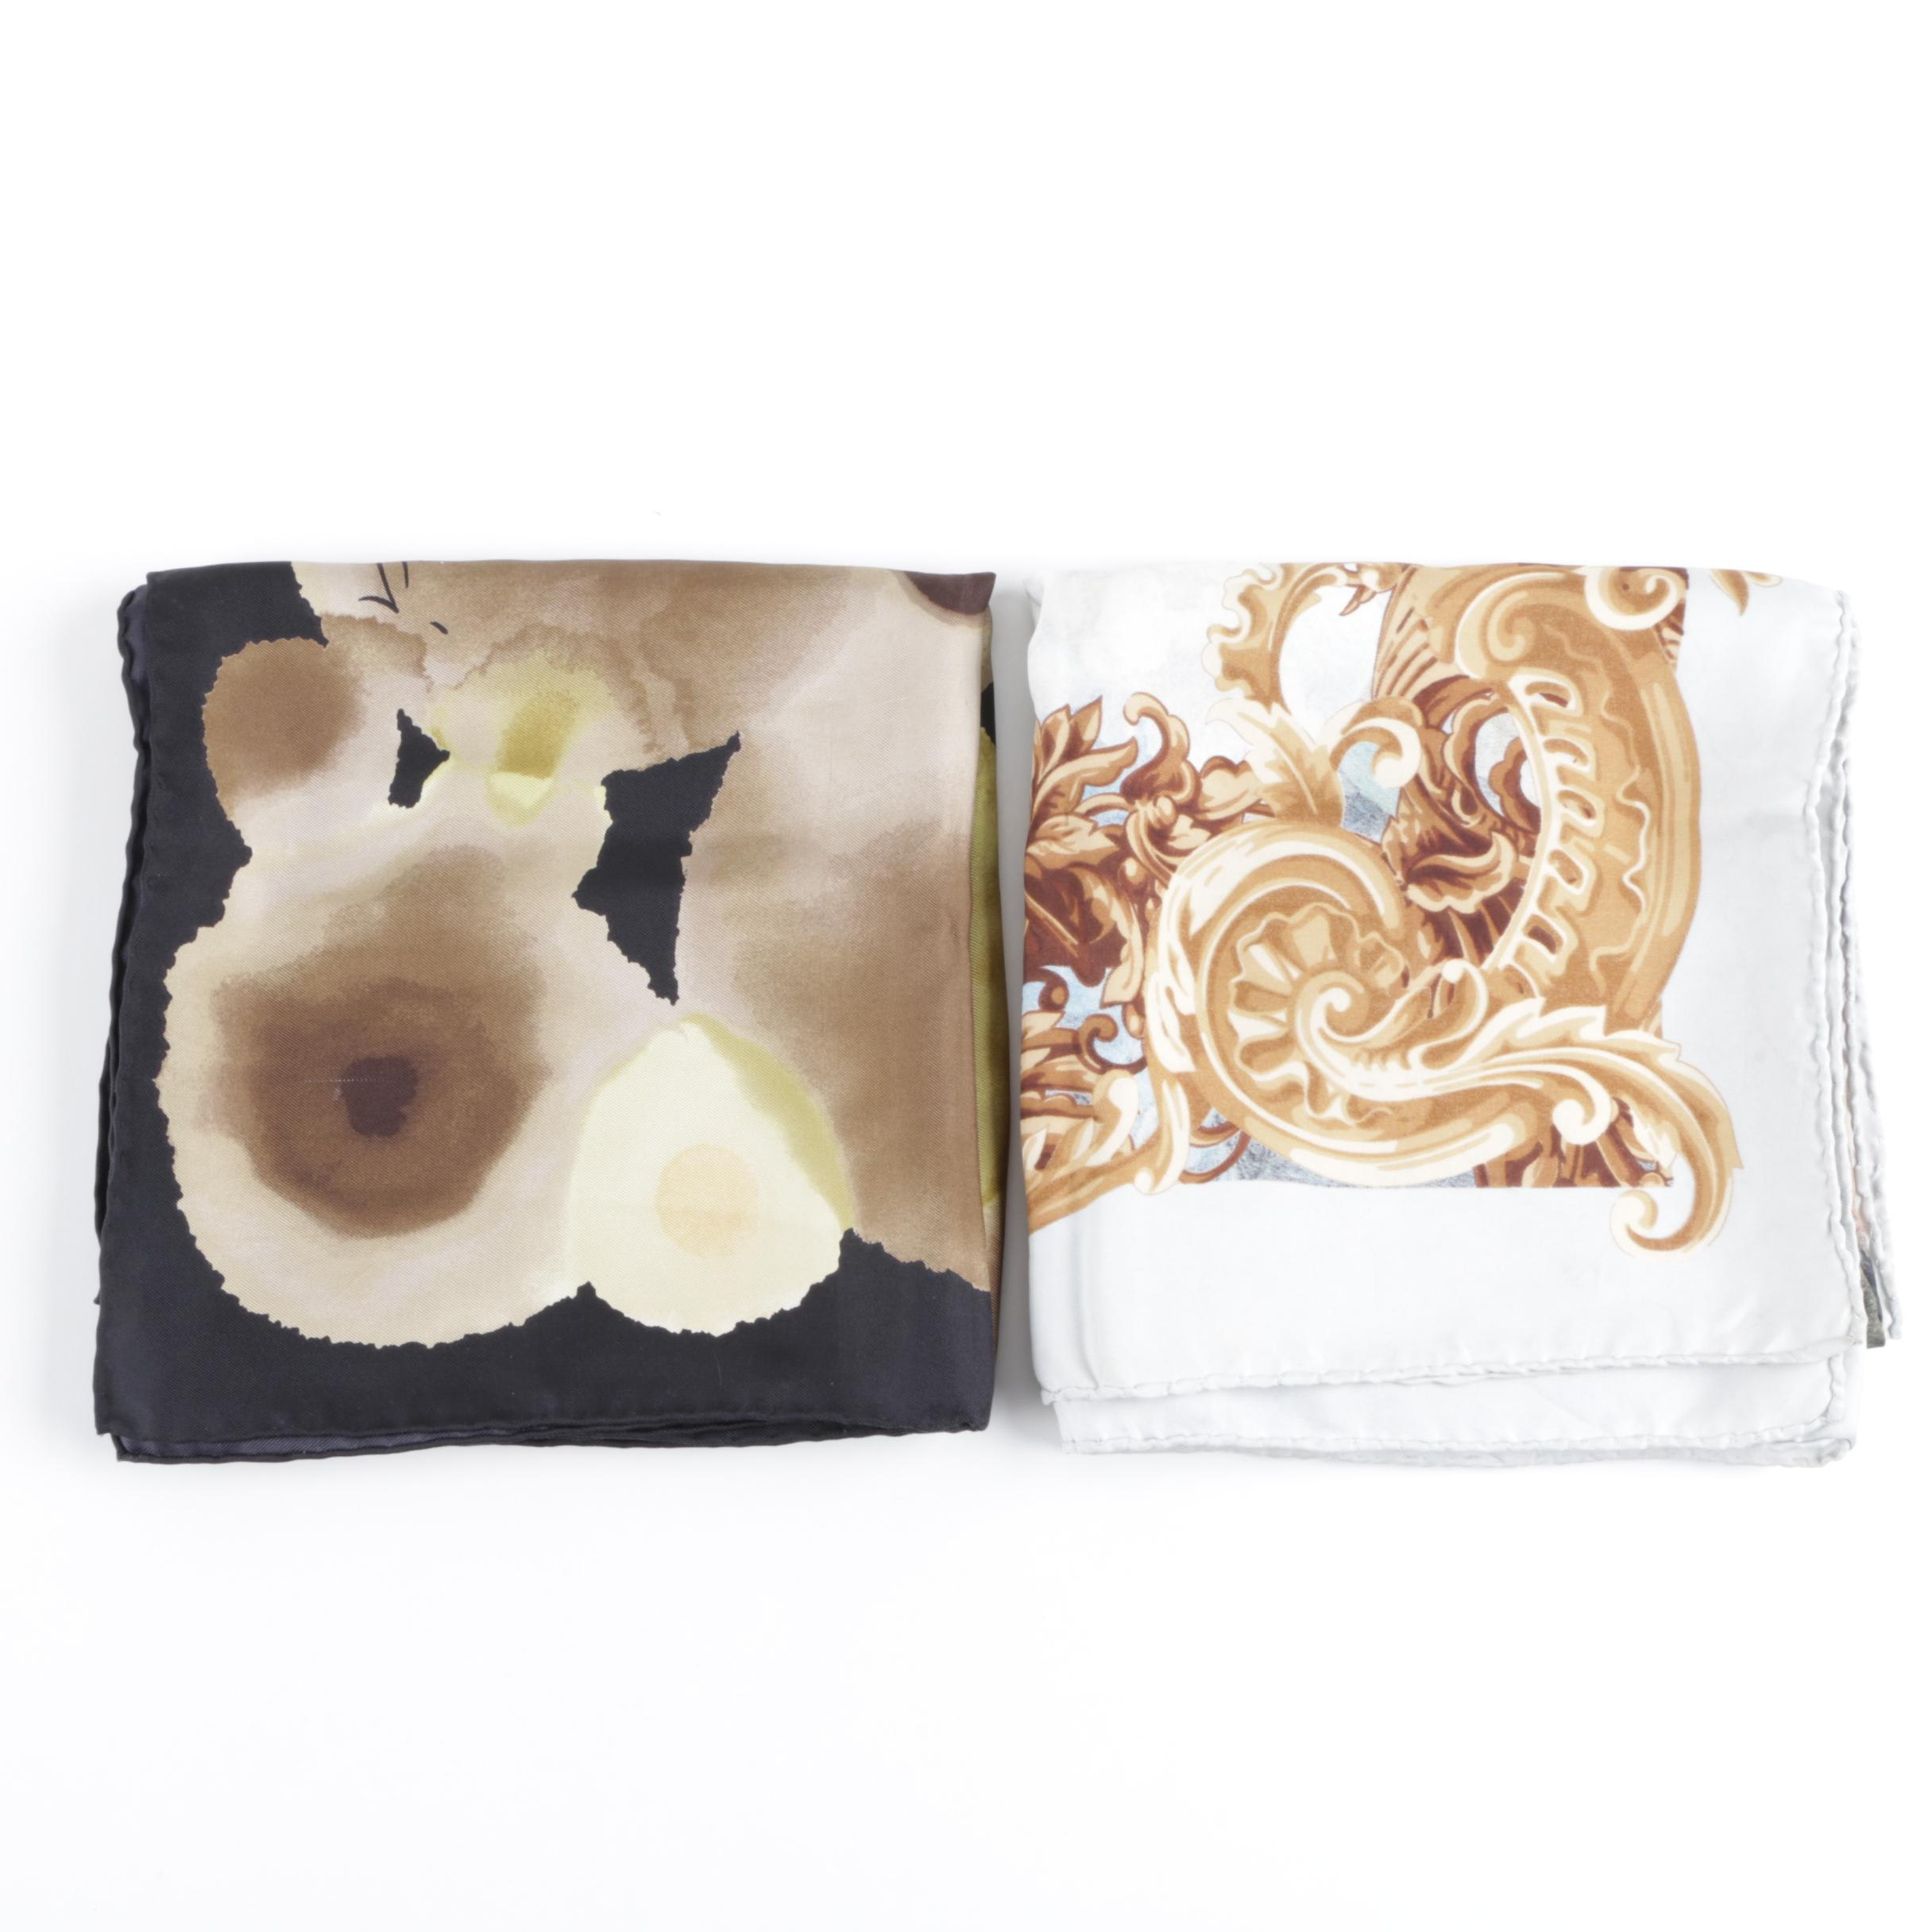 Gucci and Gianfranco Ferre Silk Scarves